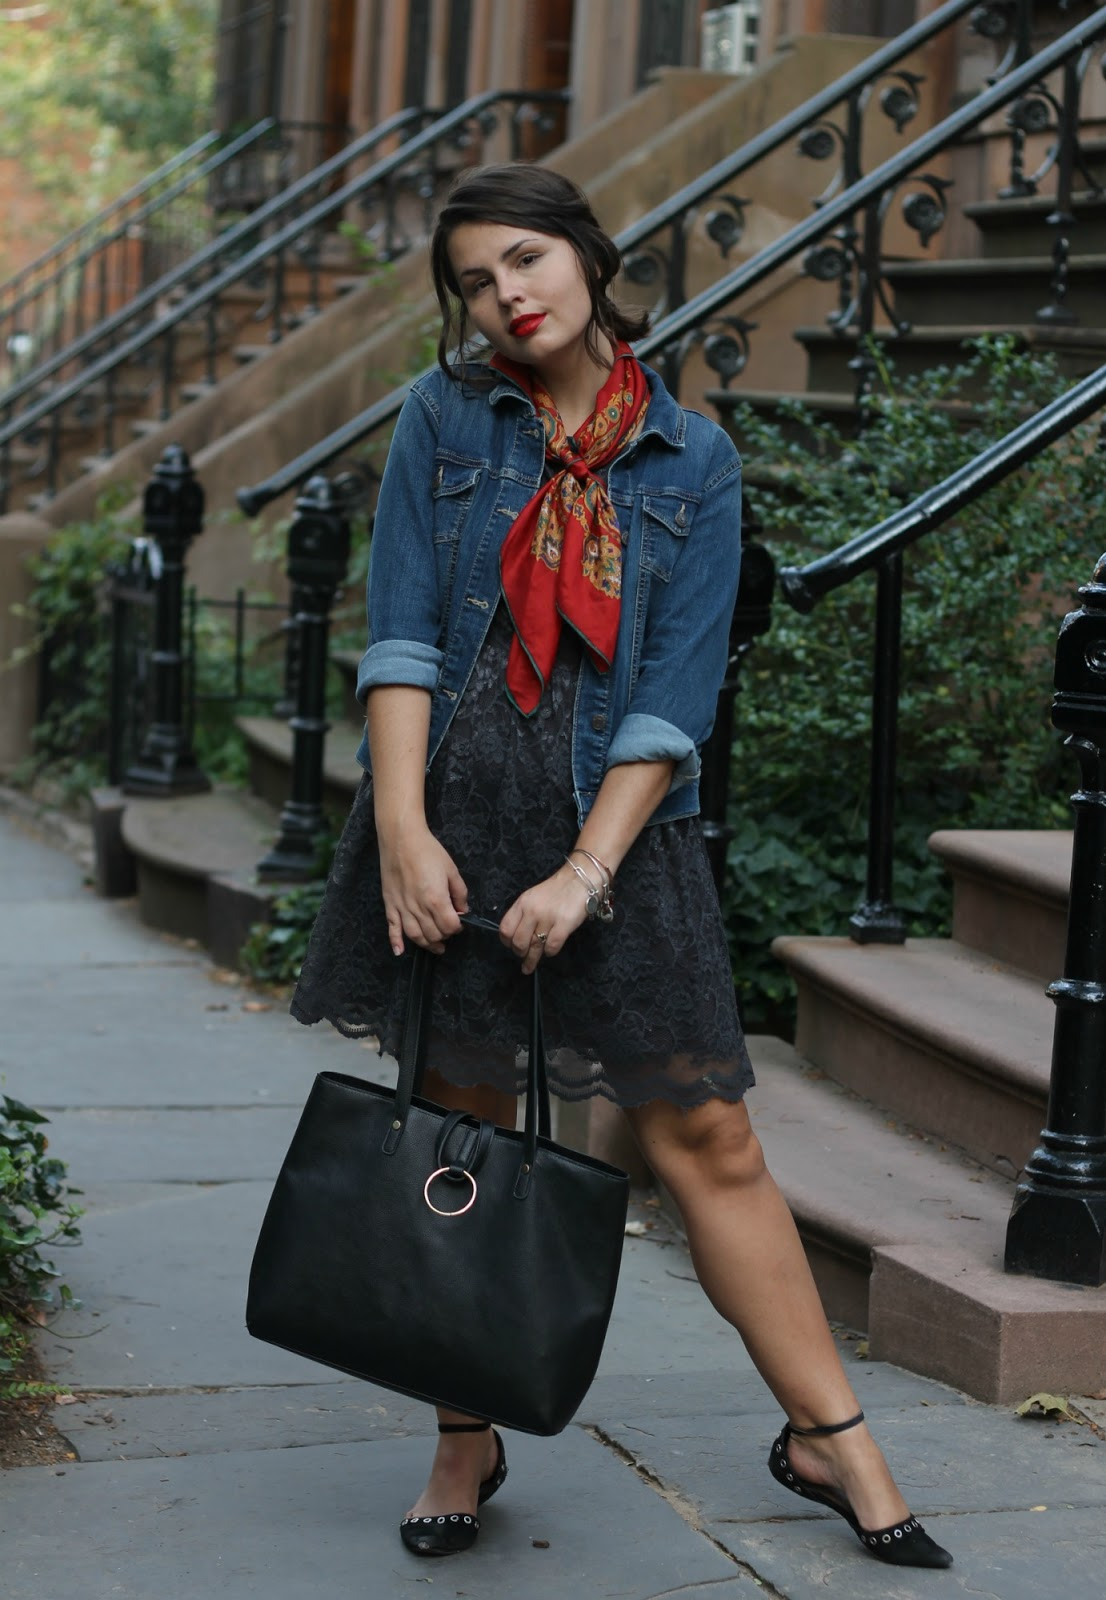 Vintage Style Outfit in NYC | Someone Like You